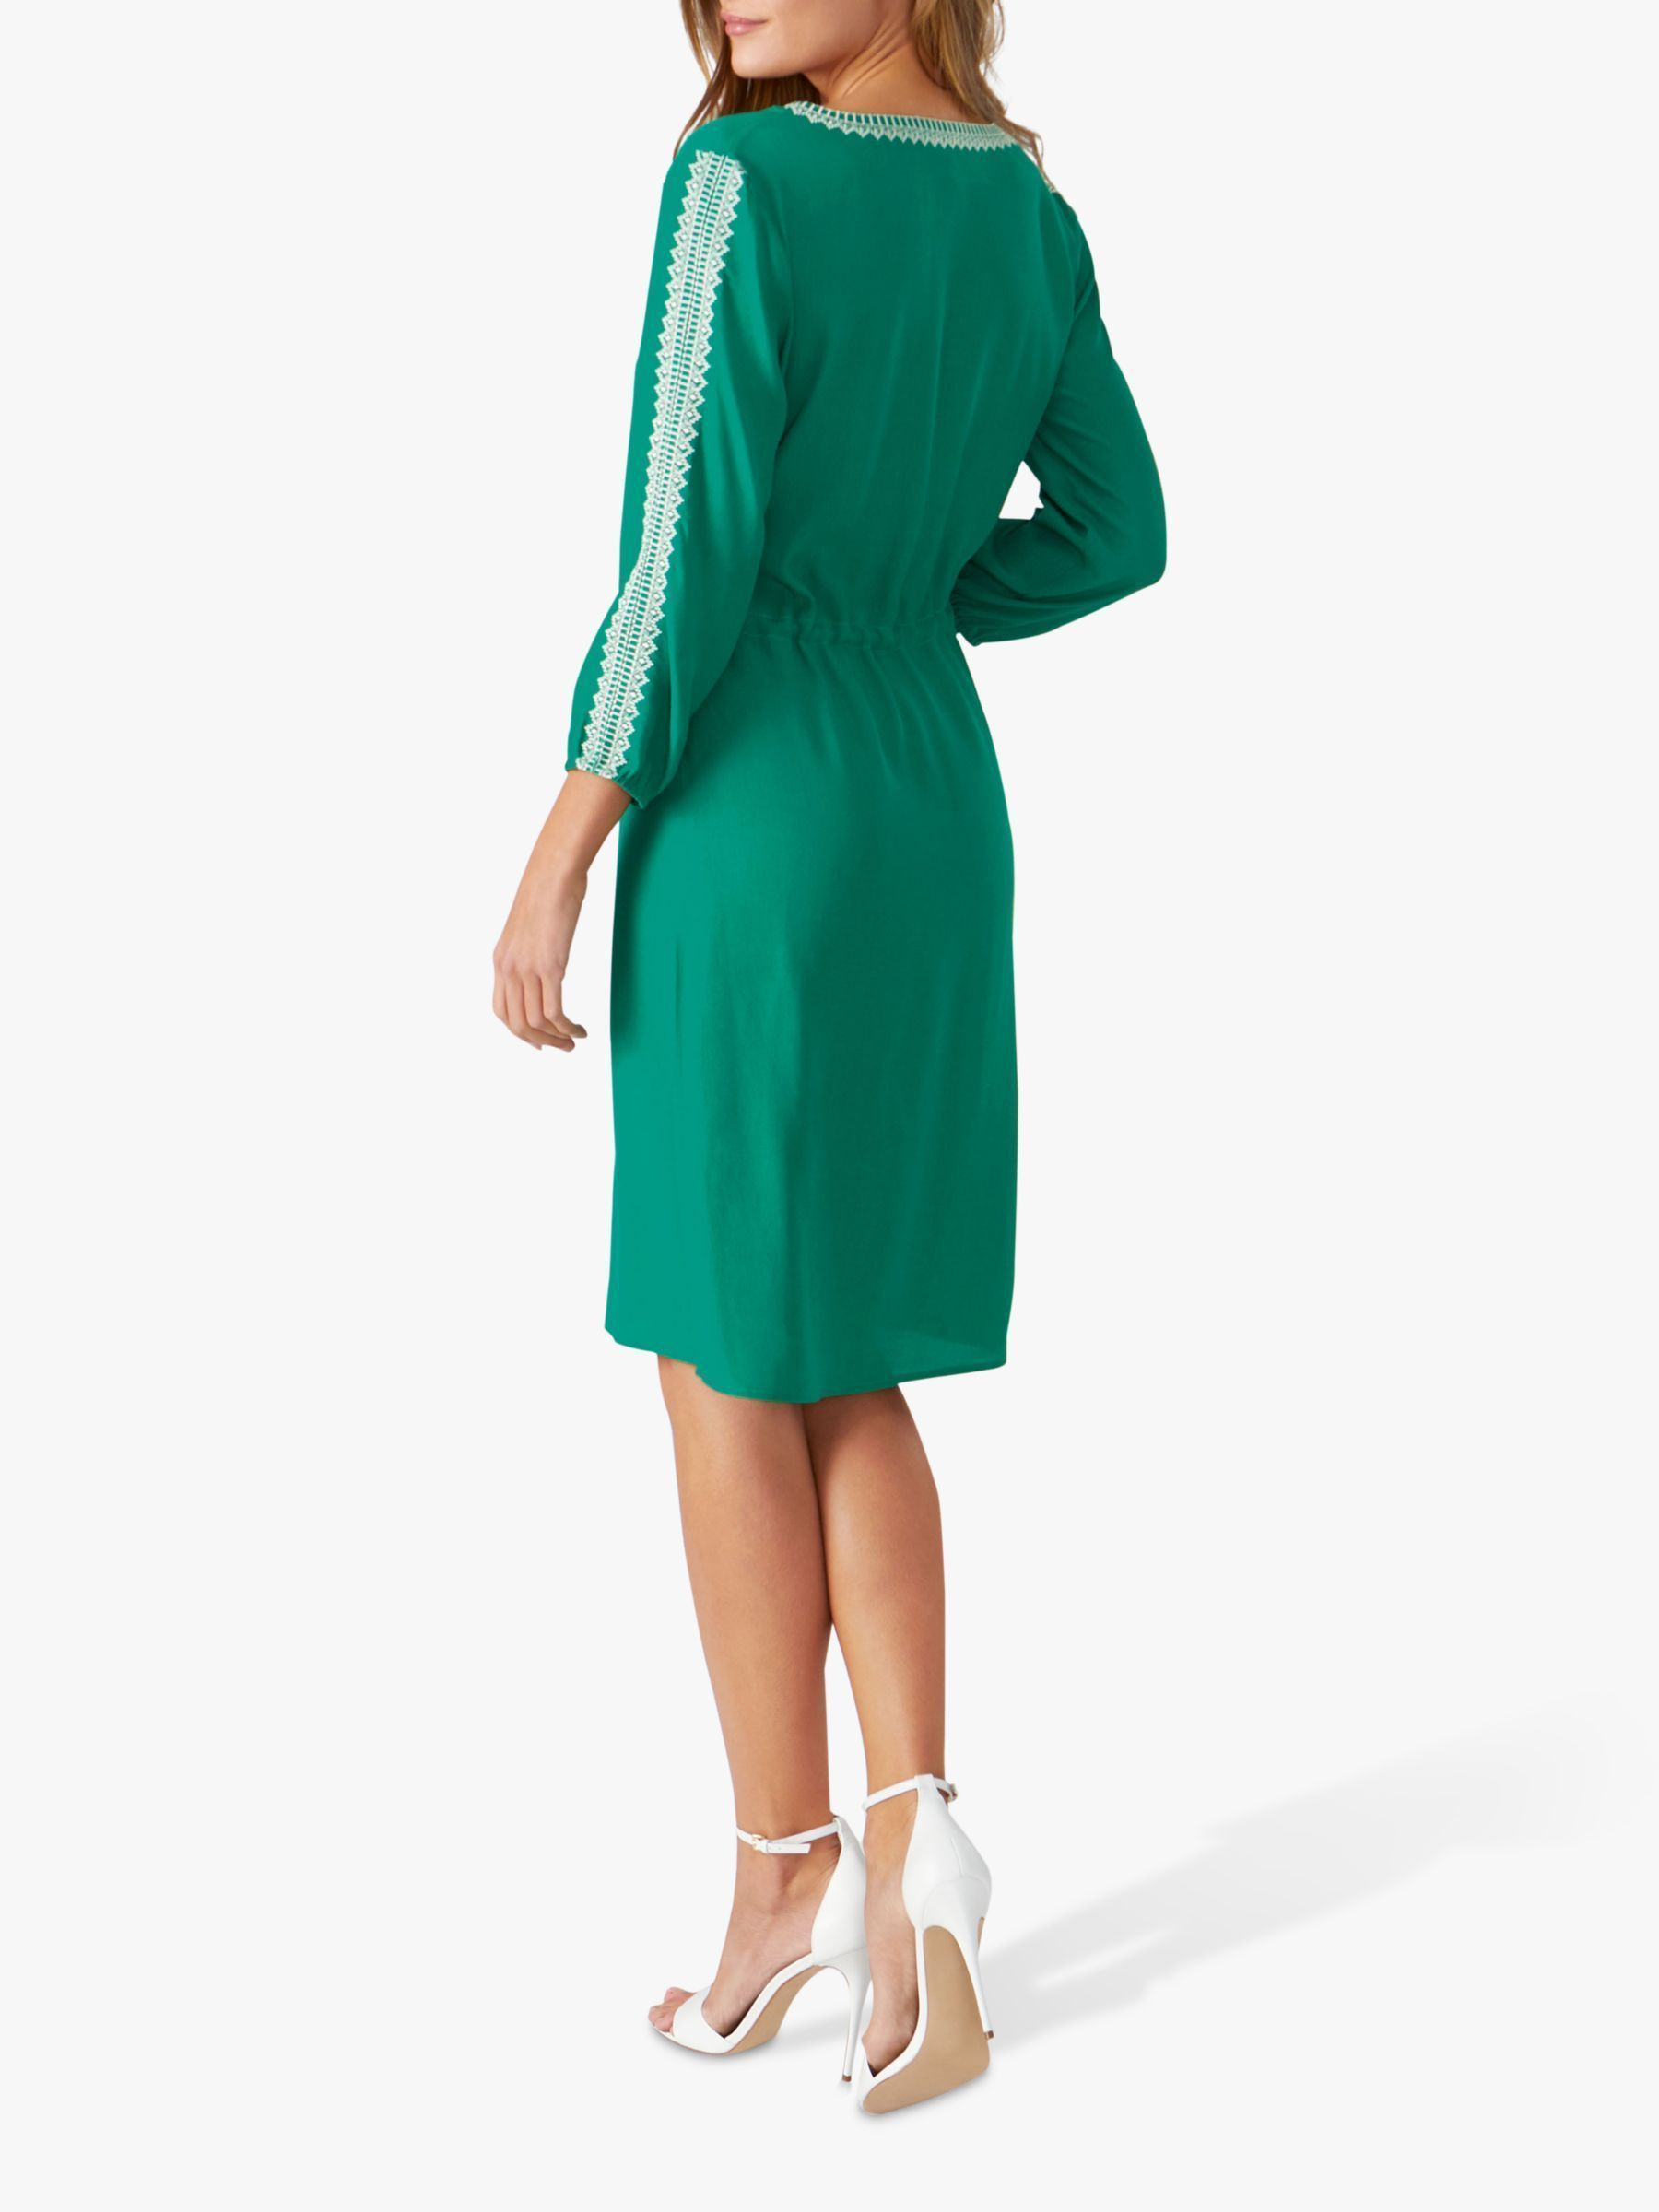 Pure Collection Open Tie Neck Dress, Sage Green #sagegreendress Pure Collection Open Tie Neck Dress, Sage Green #sagegreendress Pure Collection Open Tie Neck Dress, Sage Green #sagegreendress Pure Collection Open Tie Neck Dress, Sage Green #sagegreendress Pure Collection Open Tie Neck Dress, Sage Green #sagegreendress Pure Collection Open Tie Neck Dress, Sage Green #sagegreendress Pure Collection Open Tie Neck Dress, Sage Green #sagegreendress Pure Collection Open Tie Neck Dress, Sage Green #sagegreendress